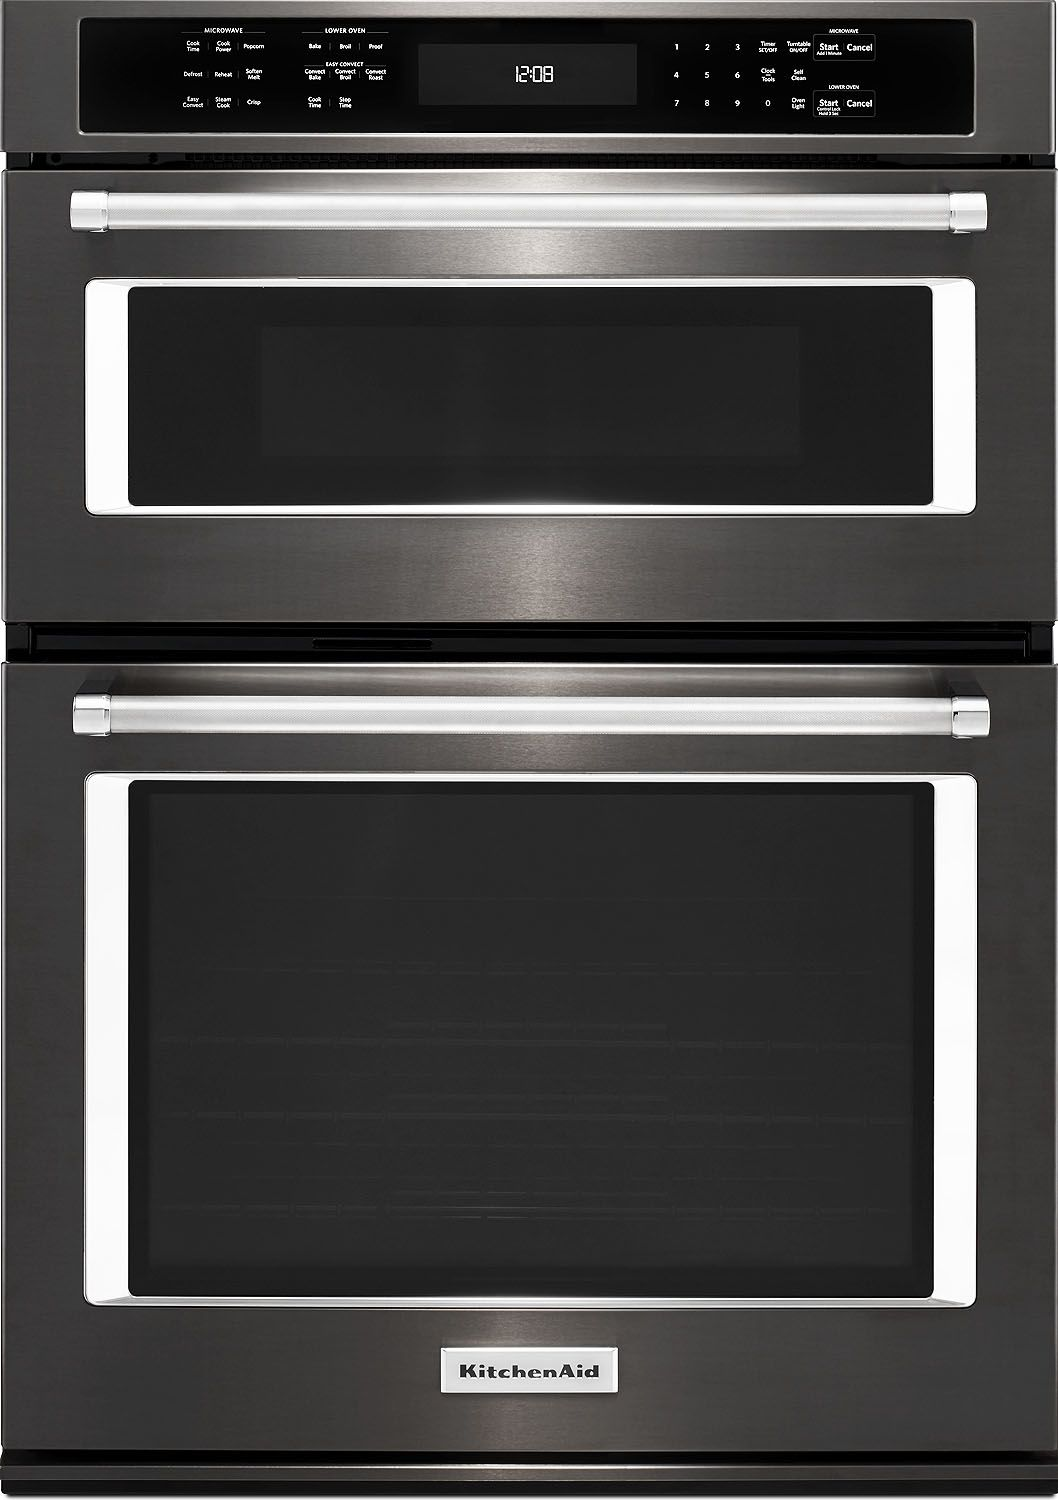 Kitchenaid 27 Quot Black Stainless Wall Oven Koce507ebs